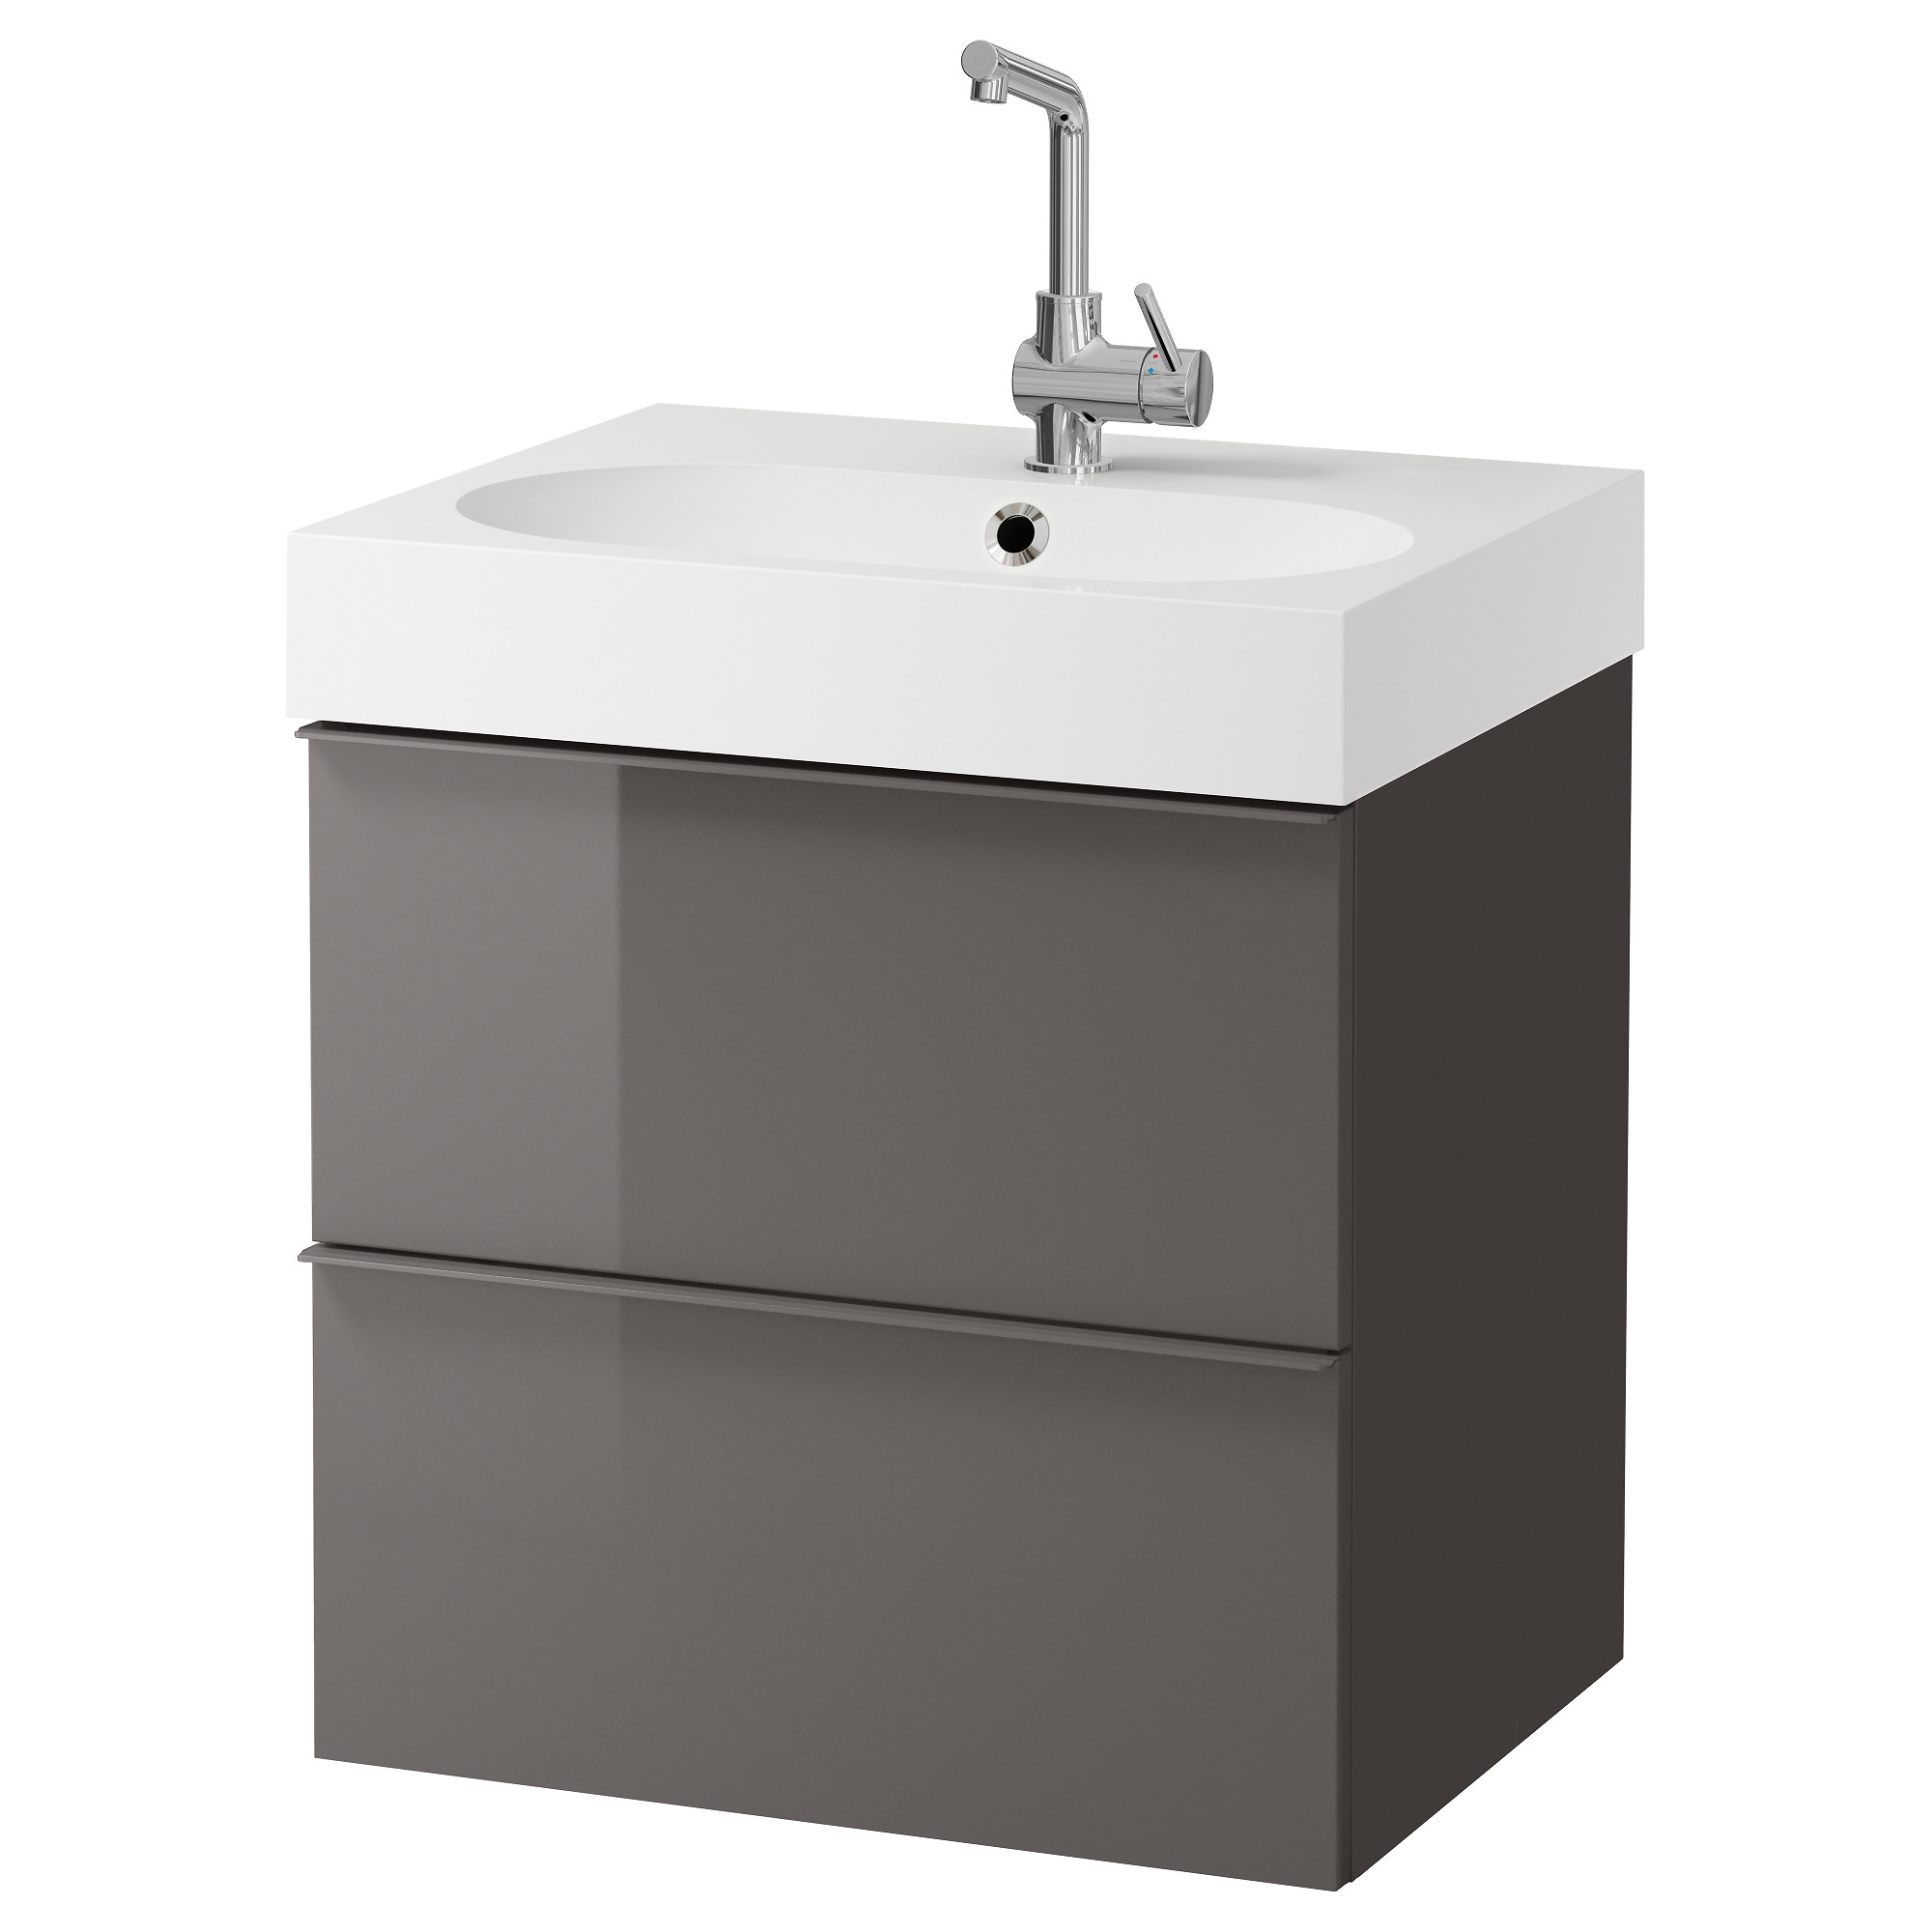 Design Sink Cabinets godmorgon sink cabinet with 2 drawers high gloss gray ikea